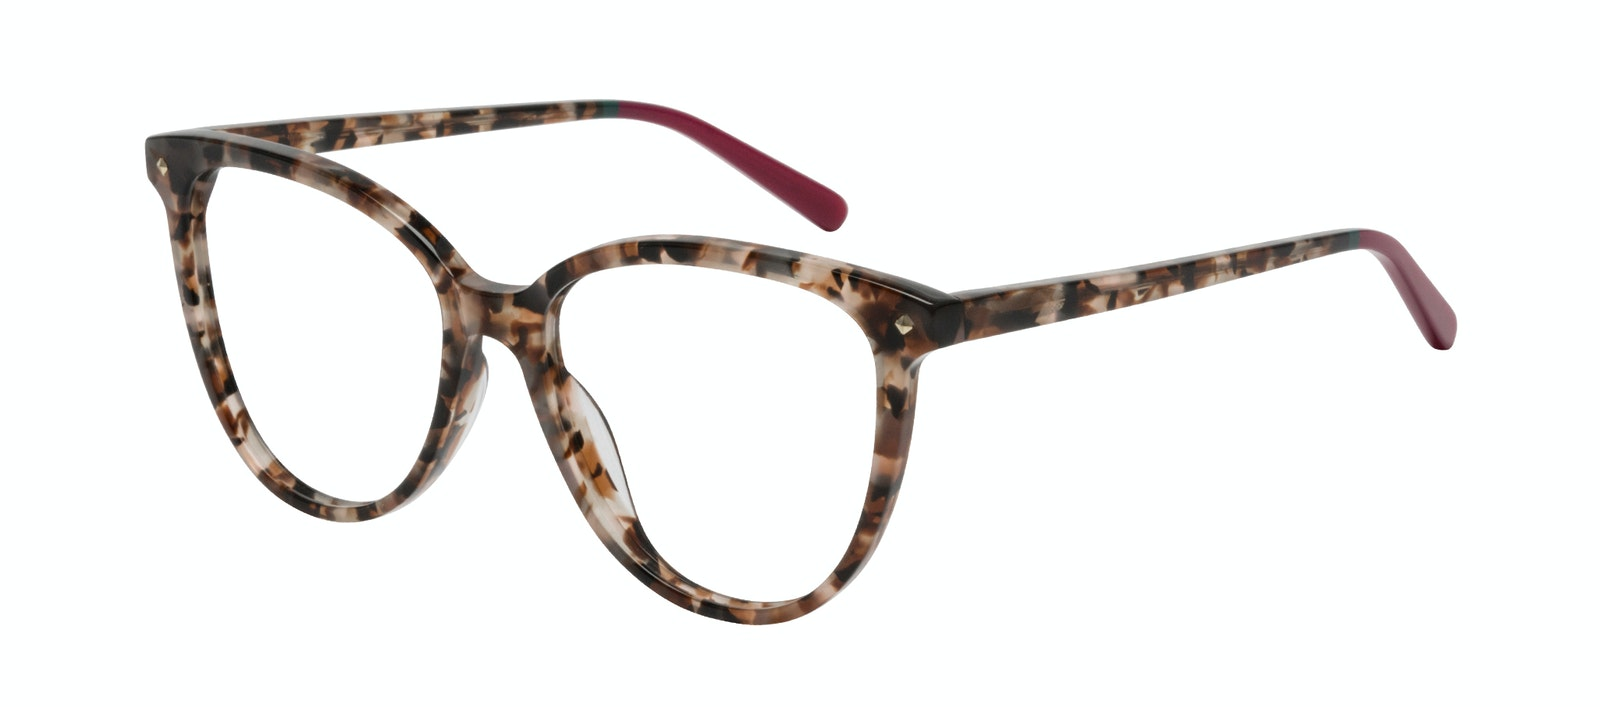 Affordable Fashion Glasses Eyeglasses Women Jane Pink Tortoise Tilt